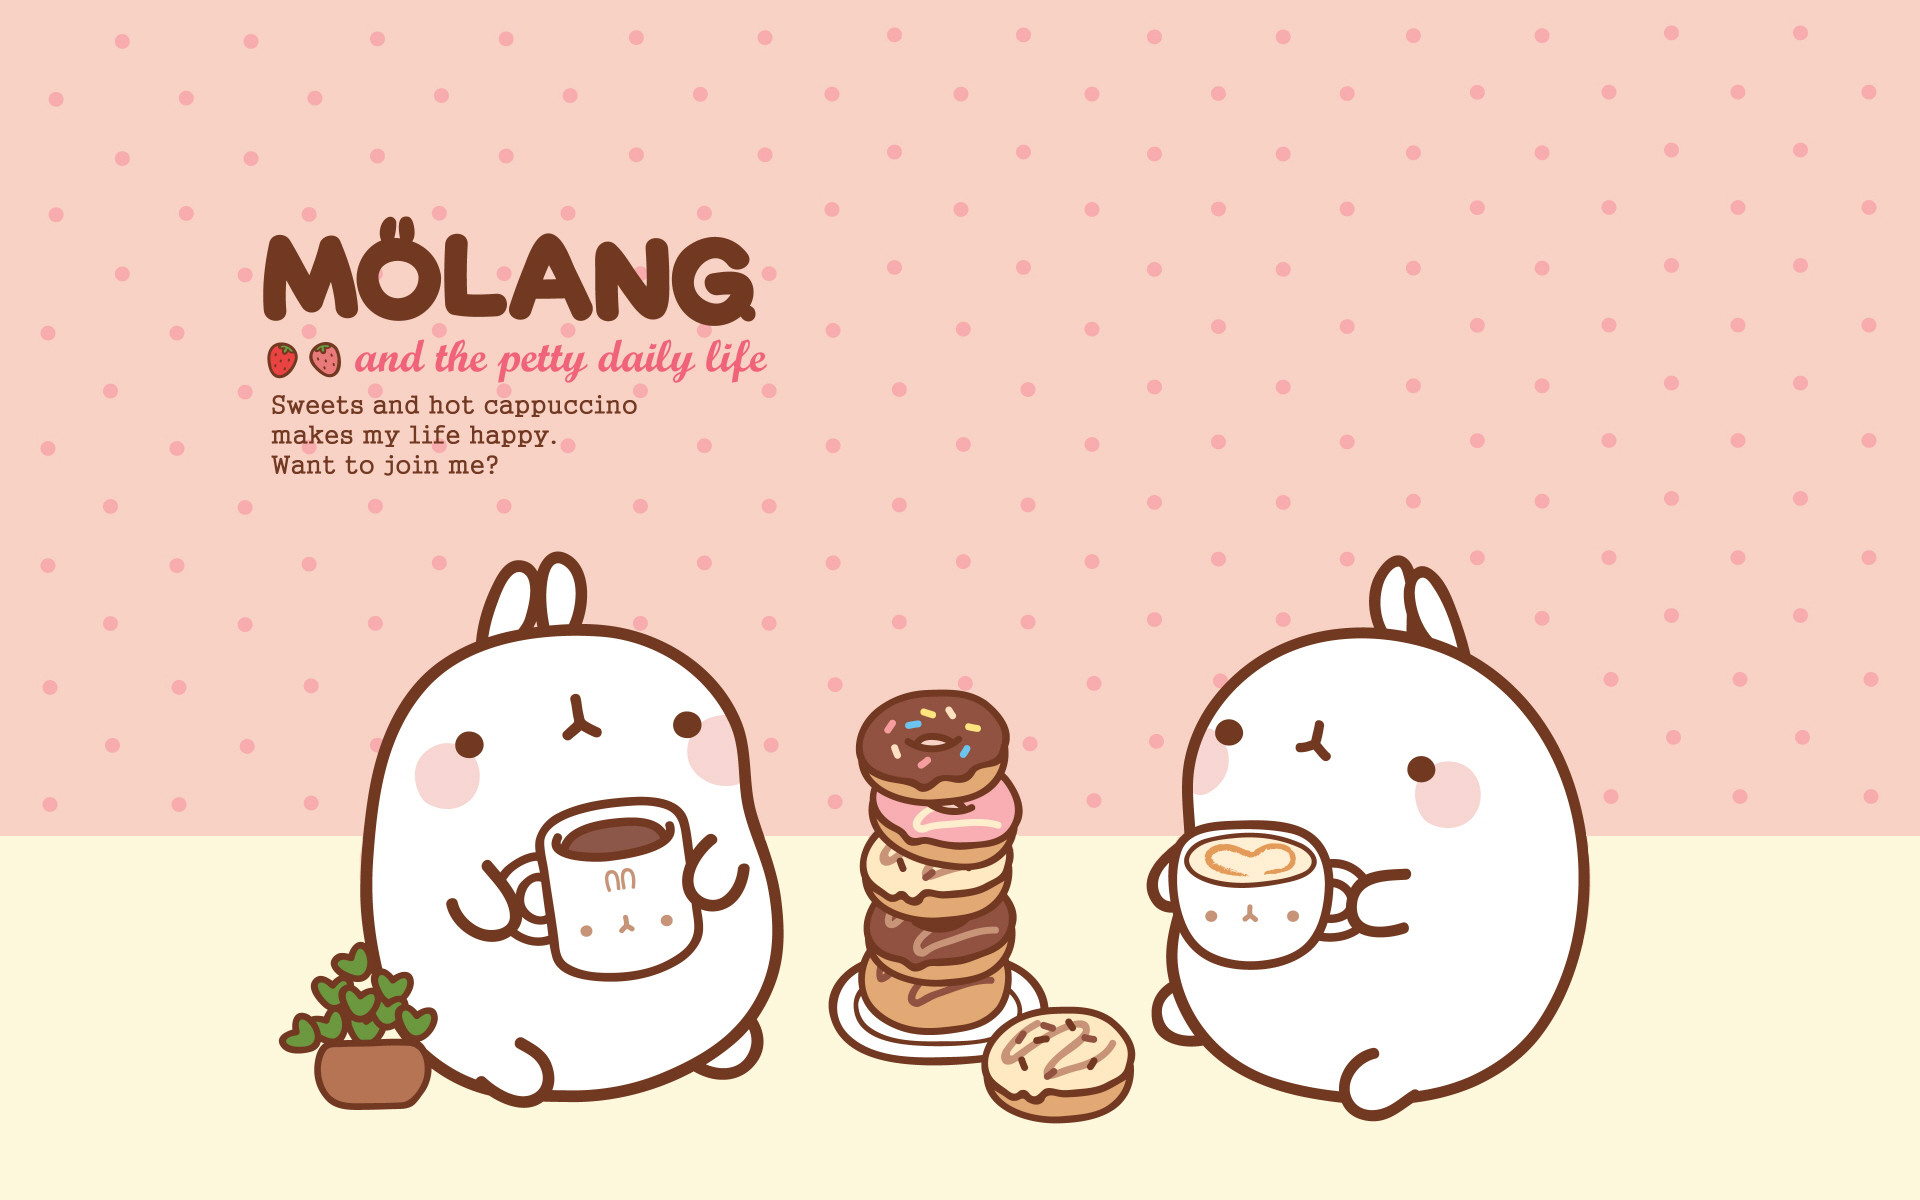 1920x1200 Molang Cute Korean Bunny Desktop Wallpaper - Litle Pups